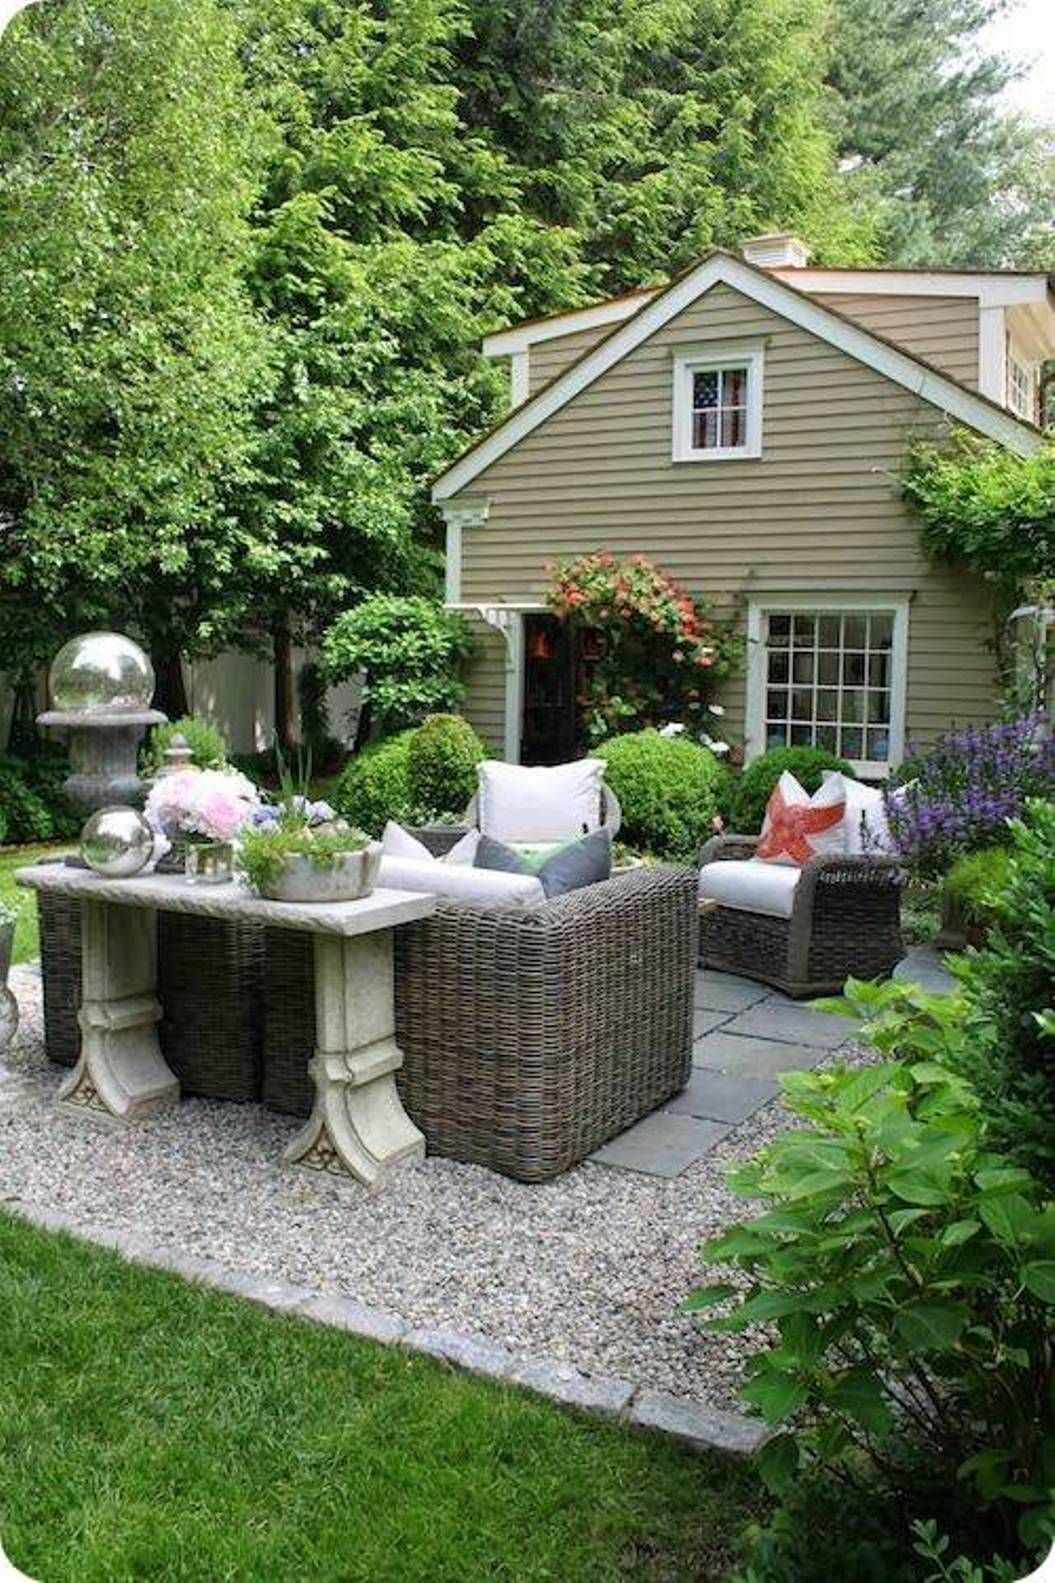 Pea Gravel Patio With Paver And Furniture : Inexpensive ... on Pea Gravel Yard Ideas id=91659